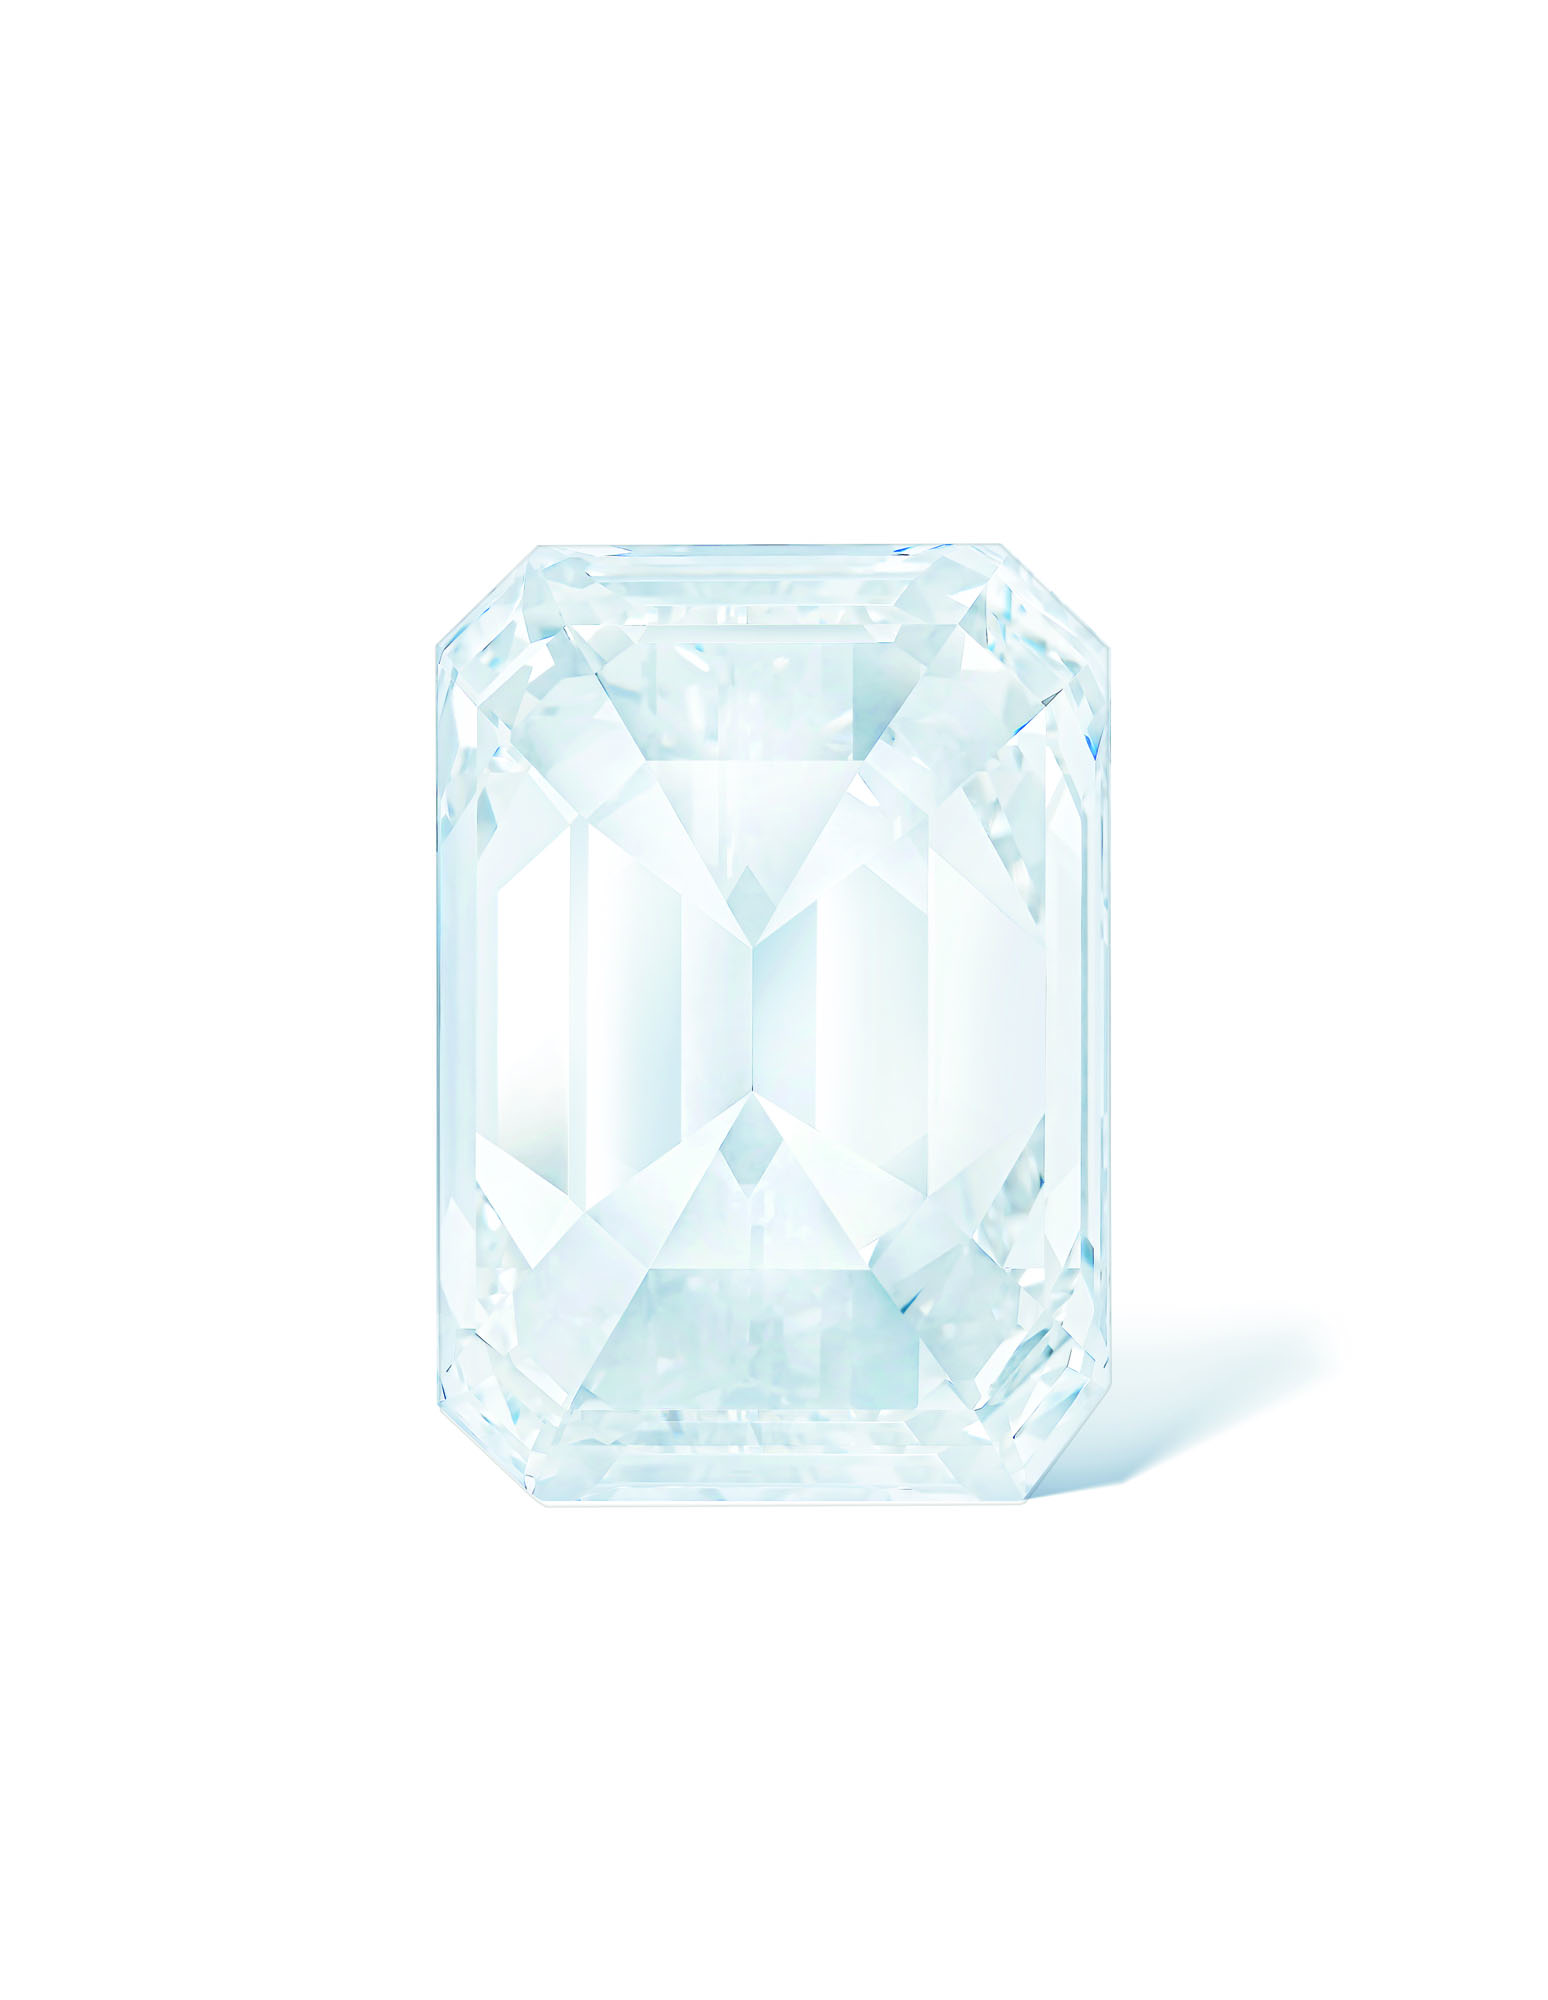 THE SPECTACLE A MAGNIFICENT UNMOUNTED DIAMOND